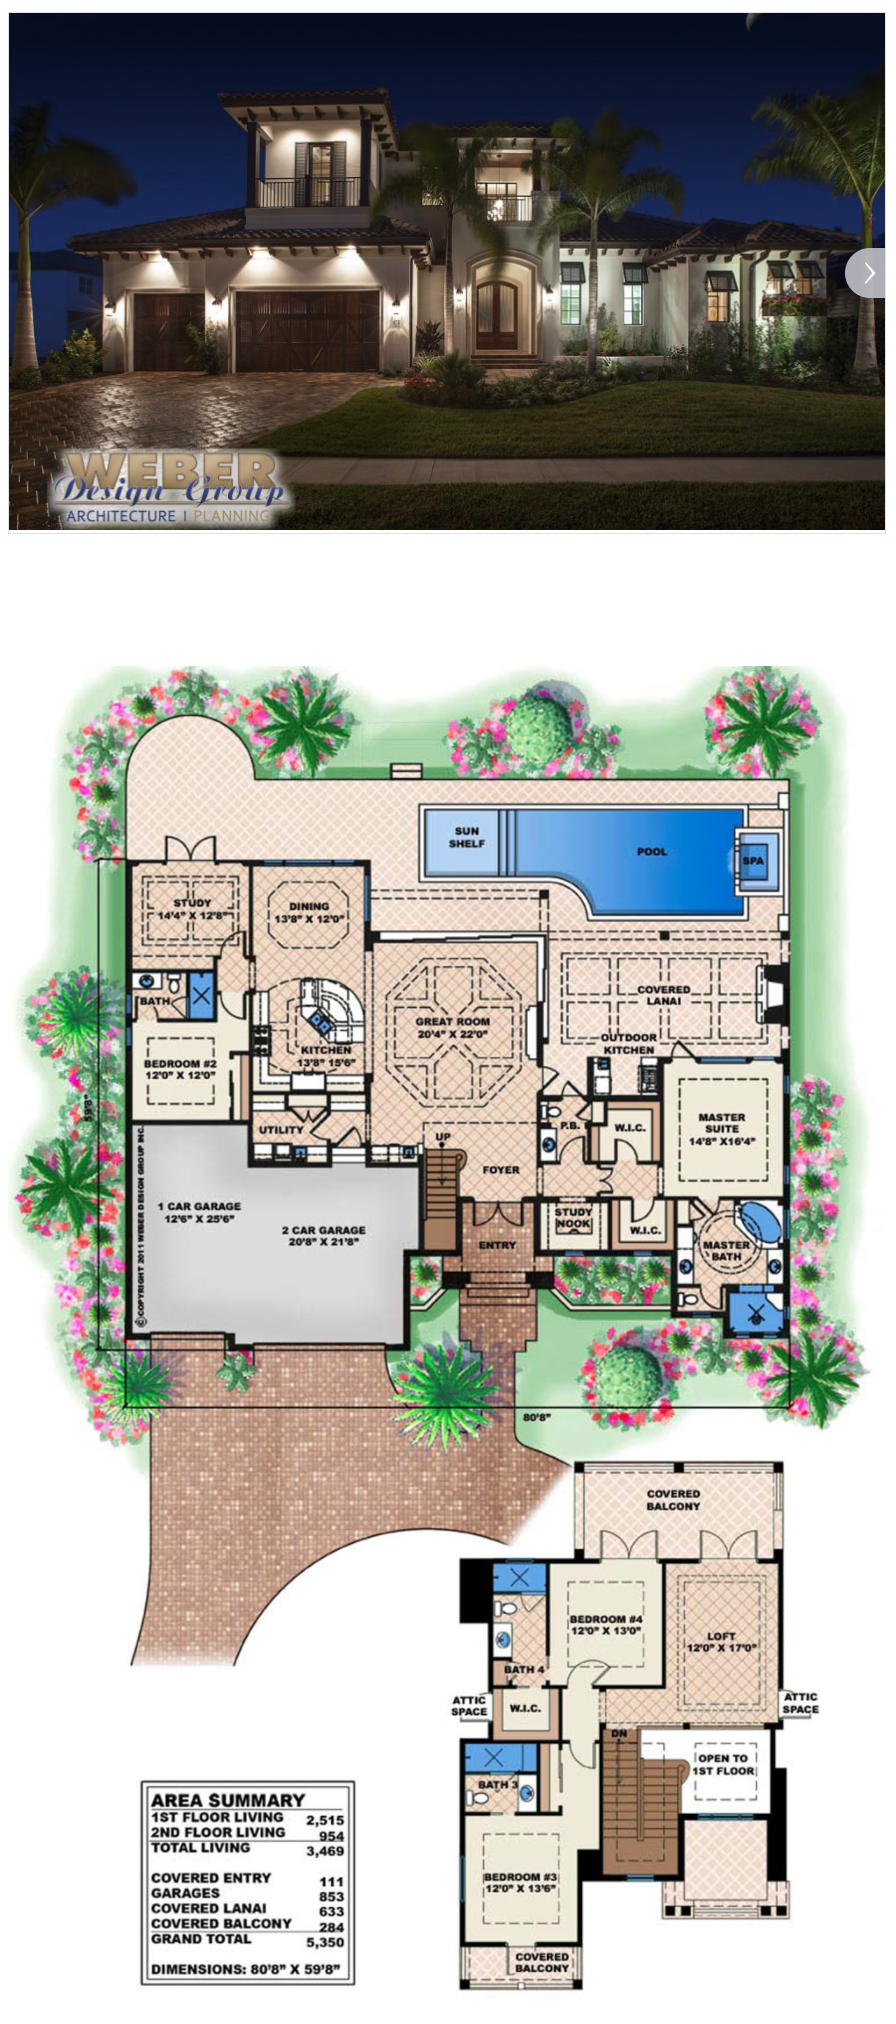 This coastal house plan was designed for